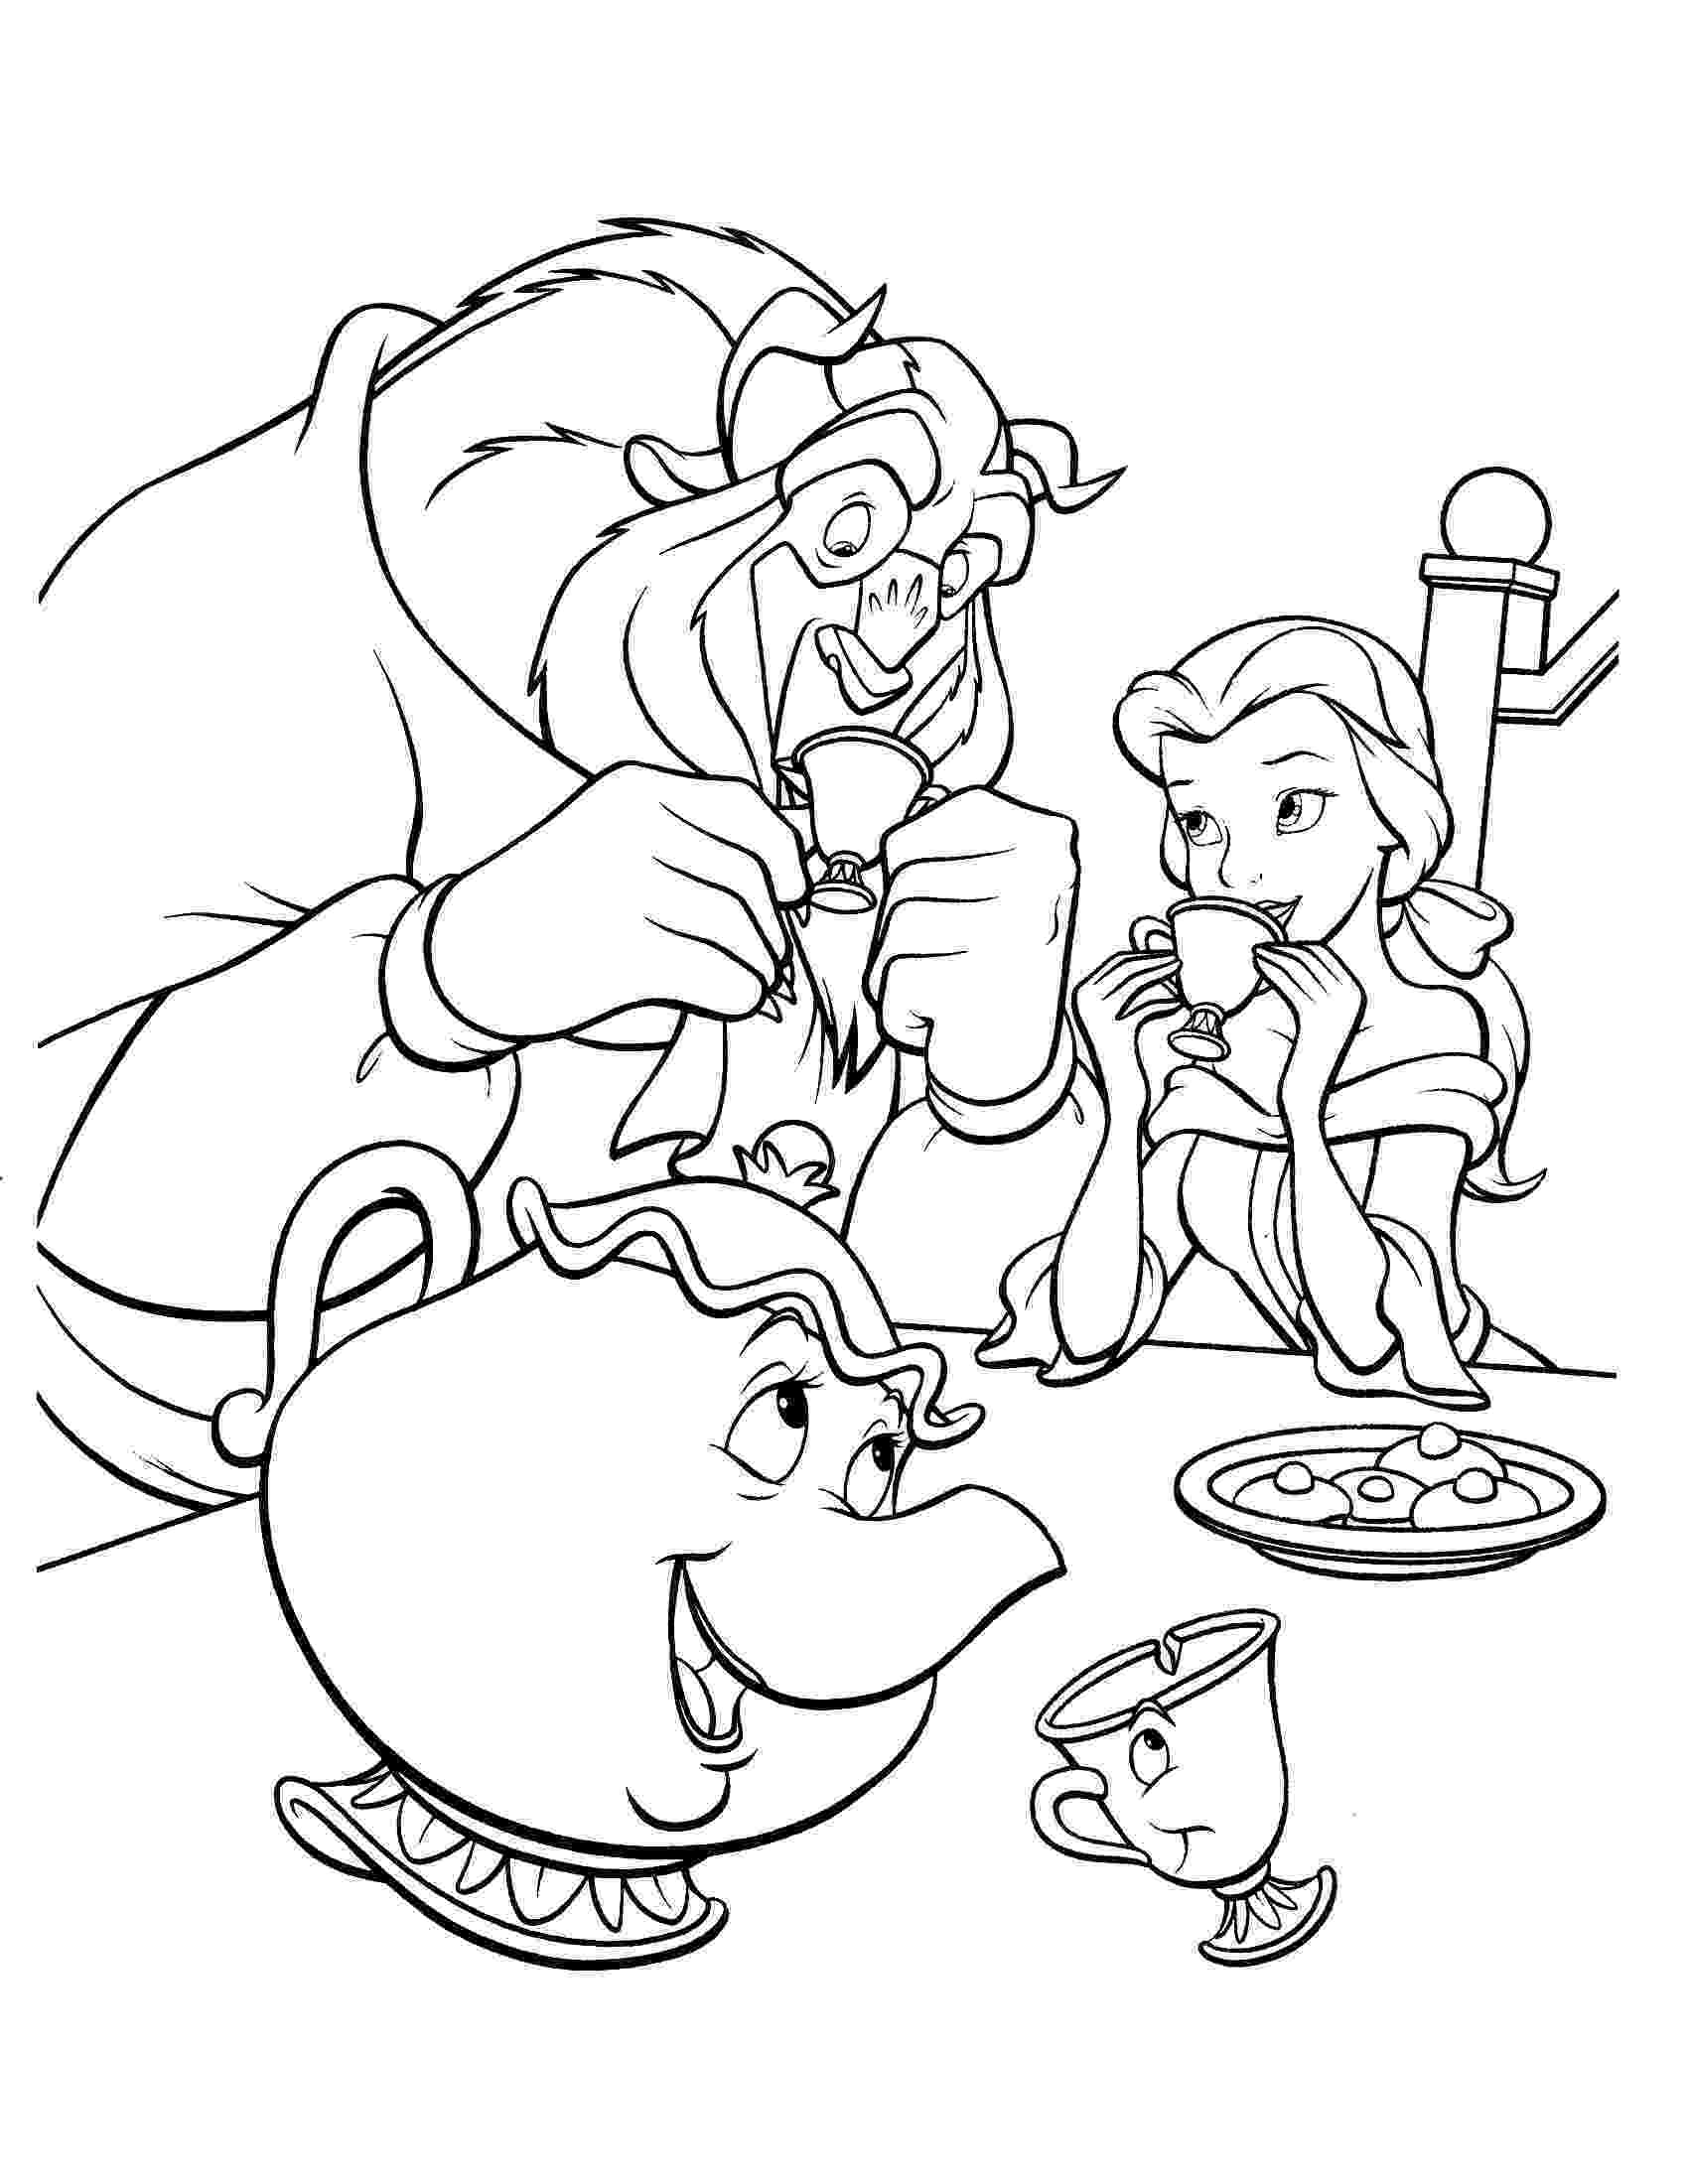 coloring pages for beauty and the beast tale as old as time cute kawaii resources and pages beauty beast the for coloring